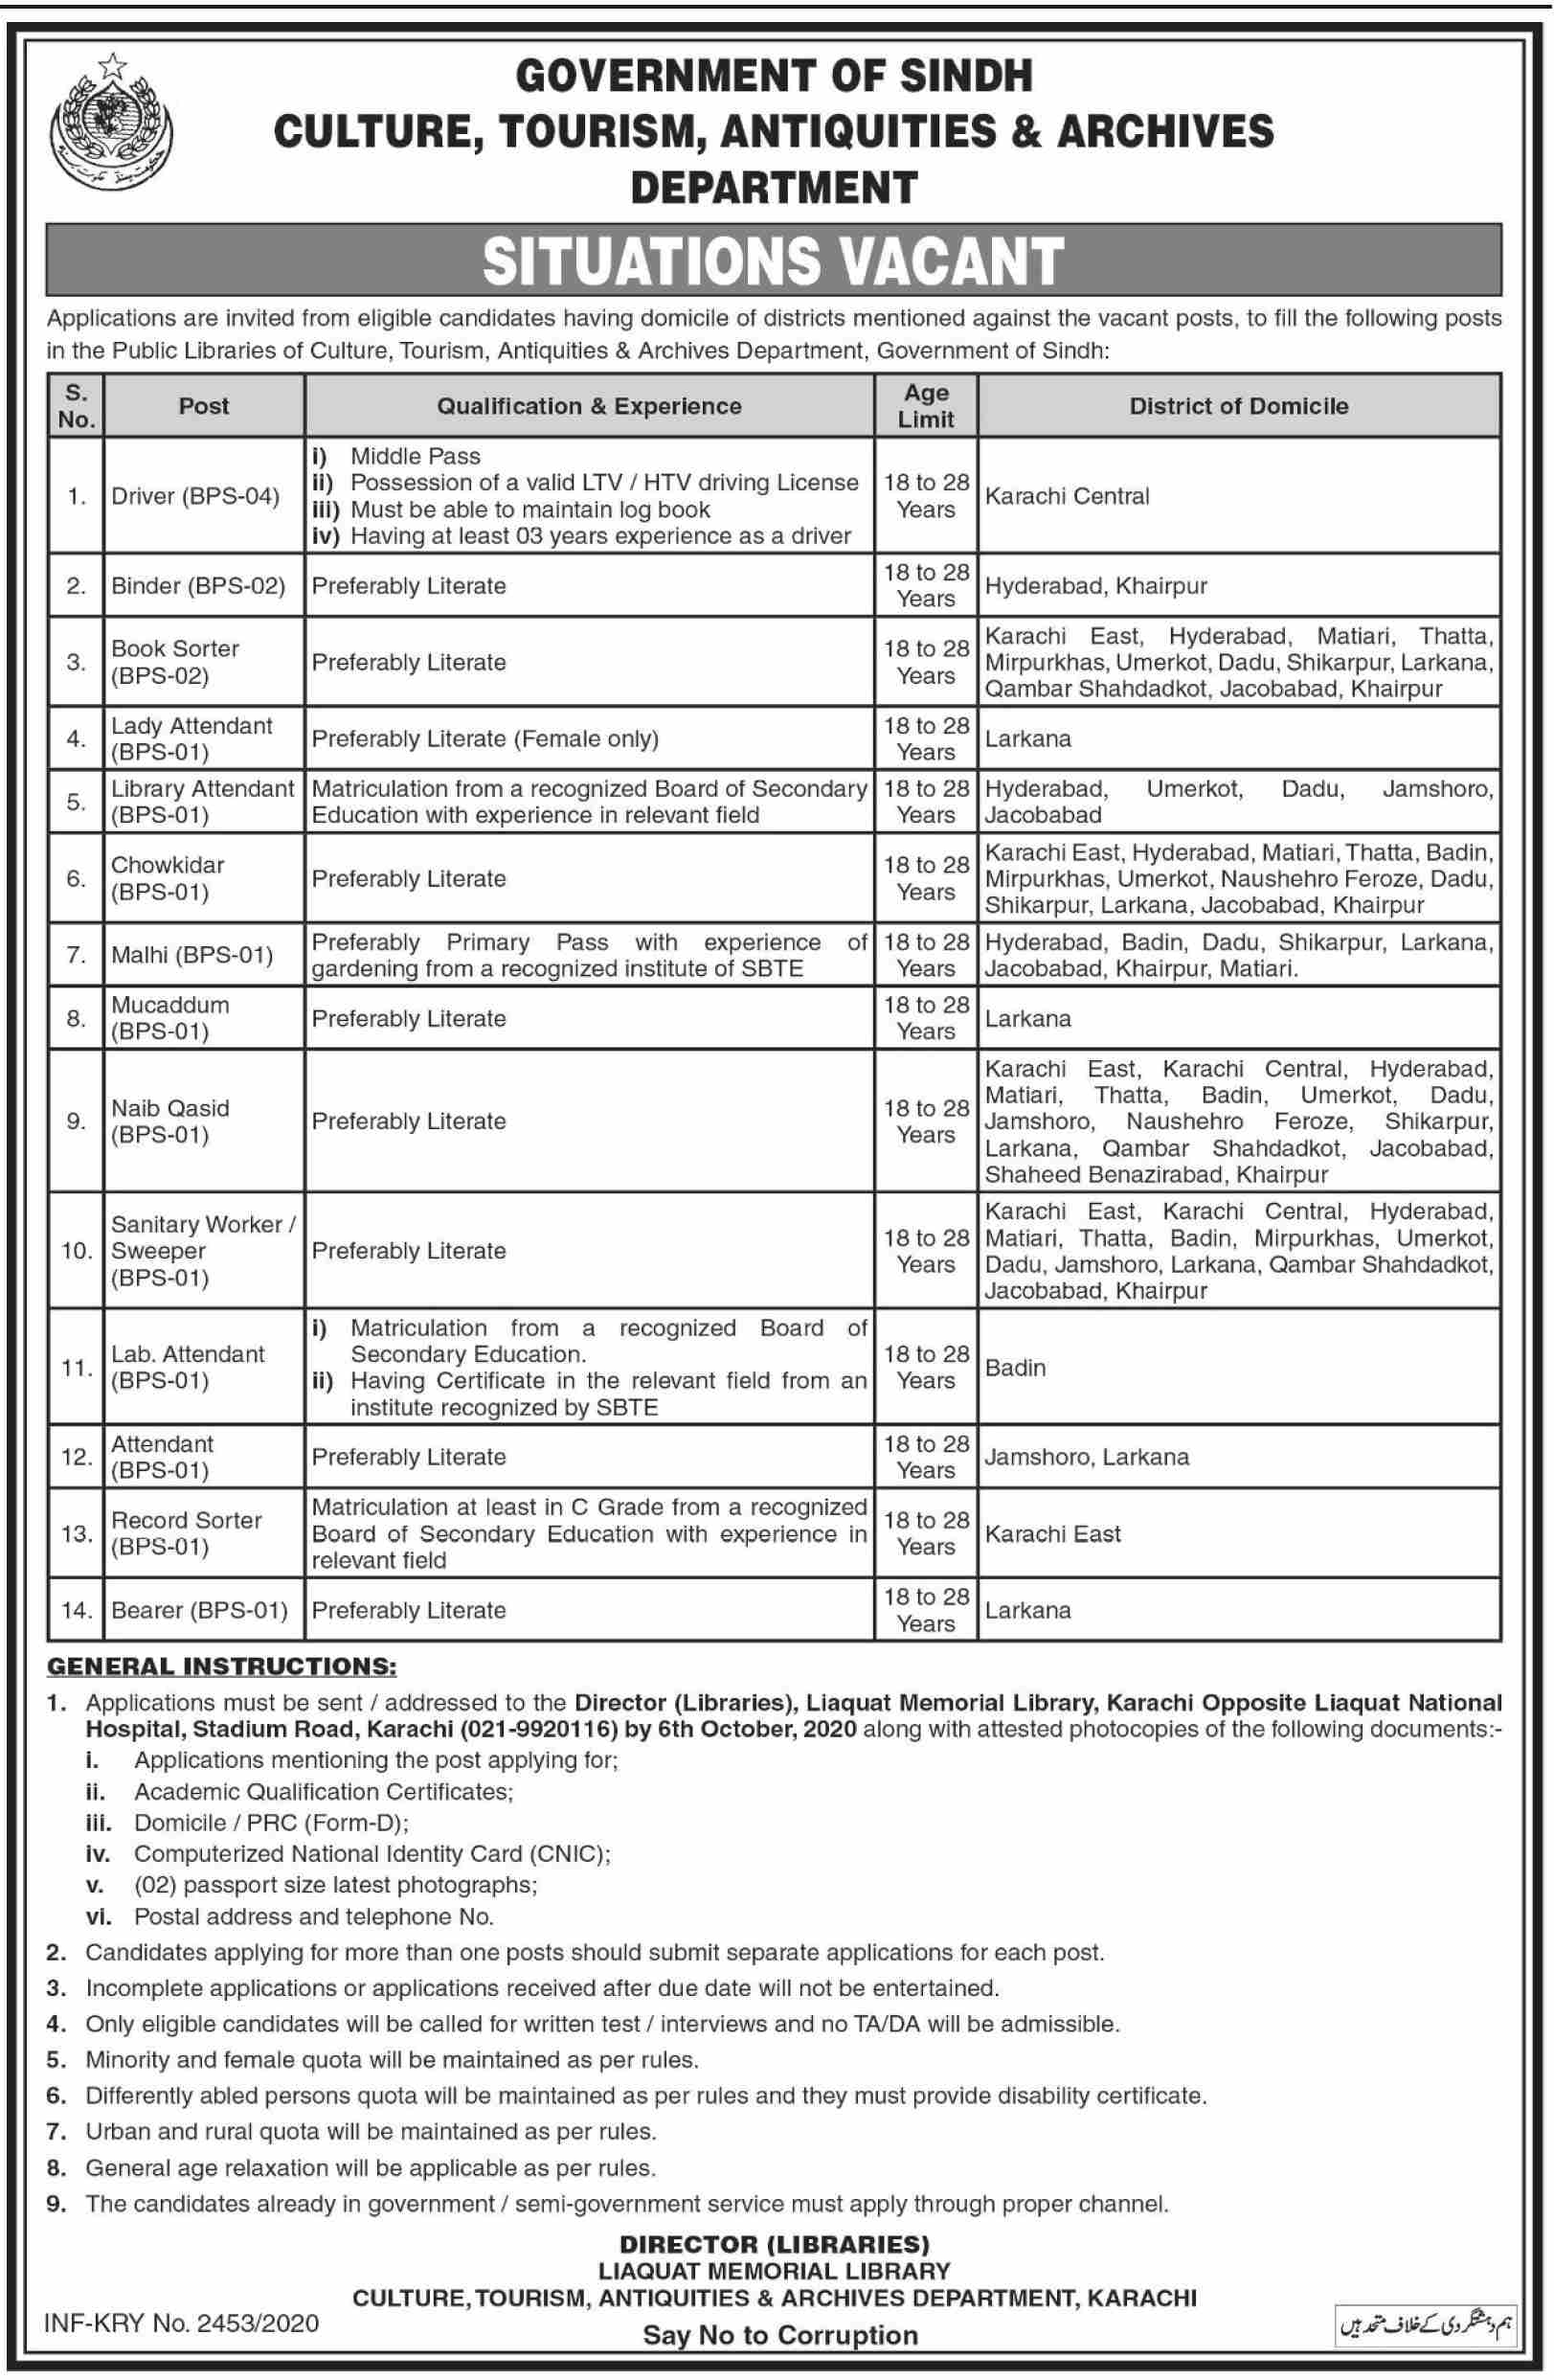 Government of Sindh Culture, Tourism, Antiquities & Archives Department Jobs September 2020